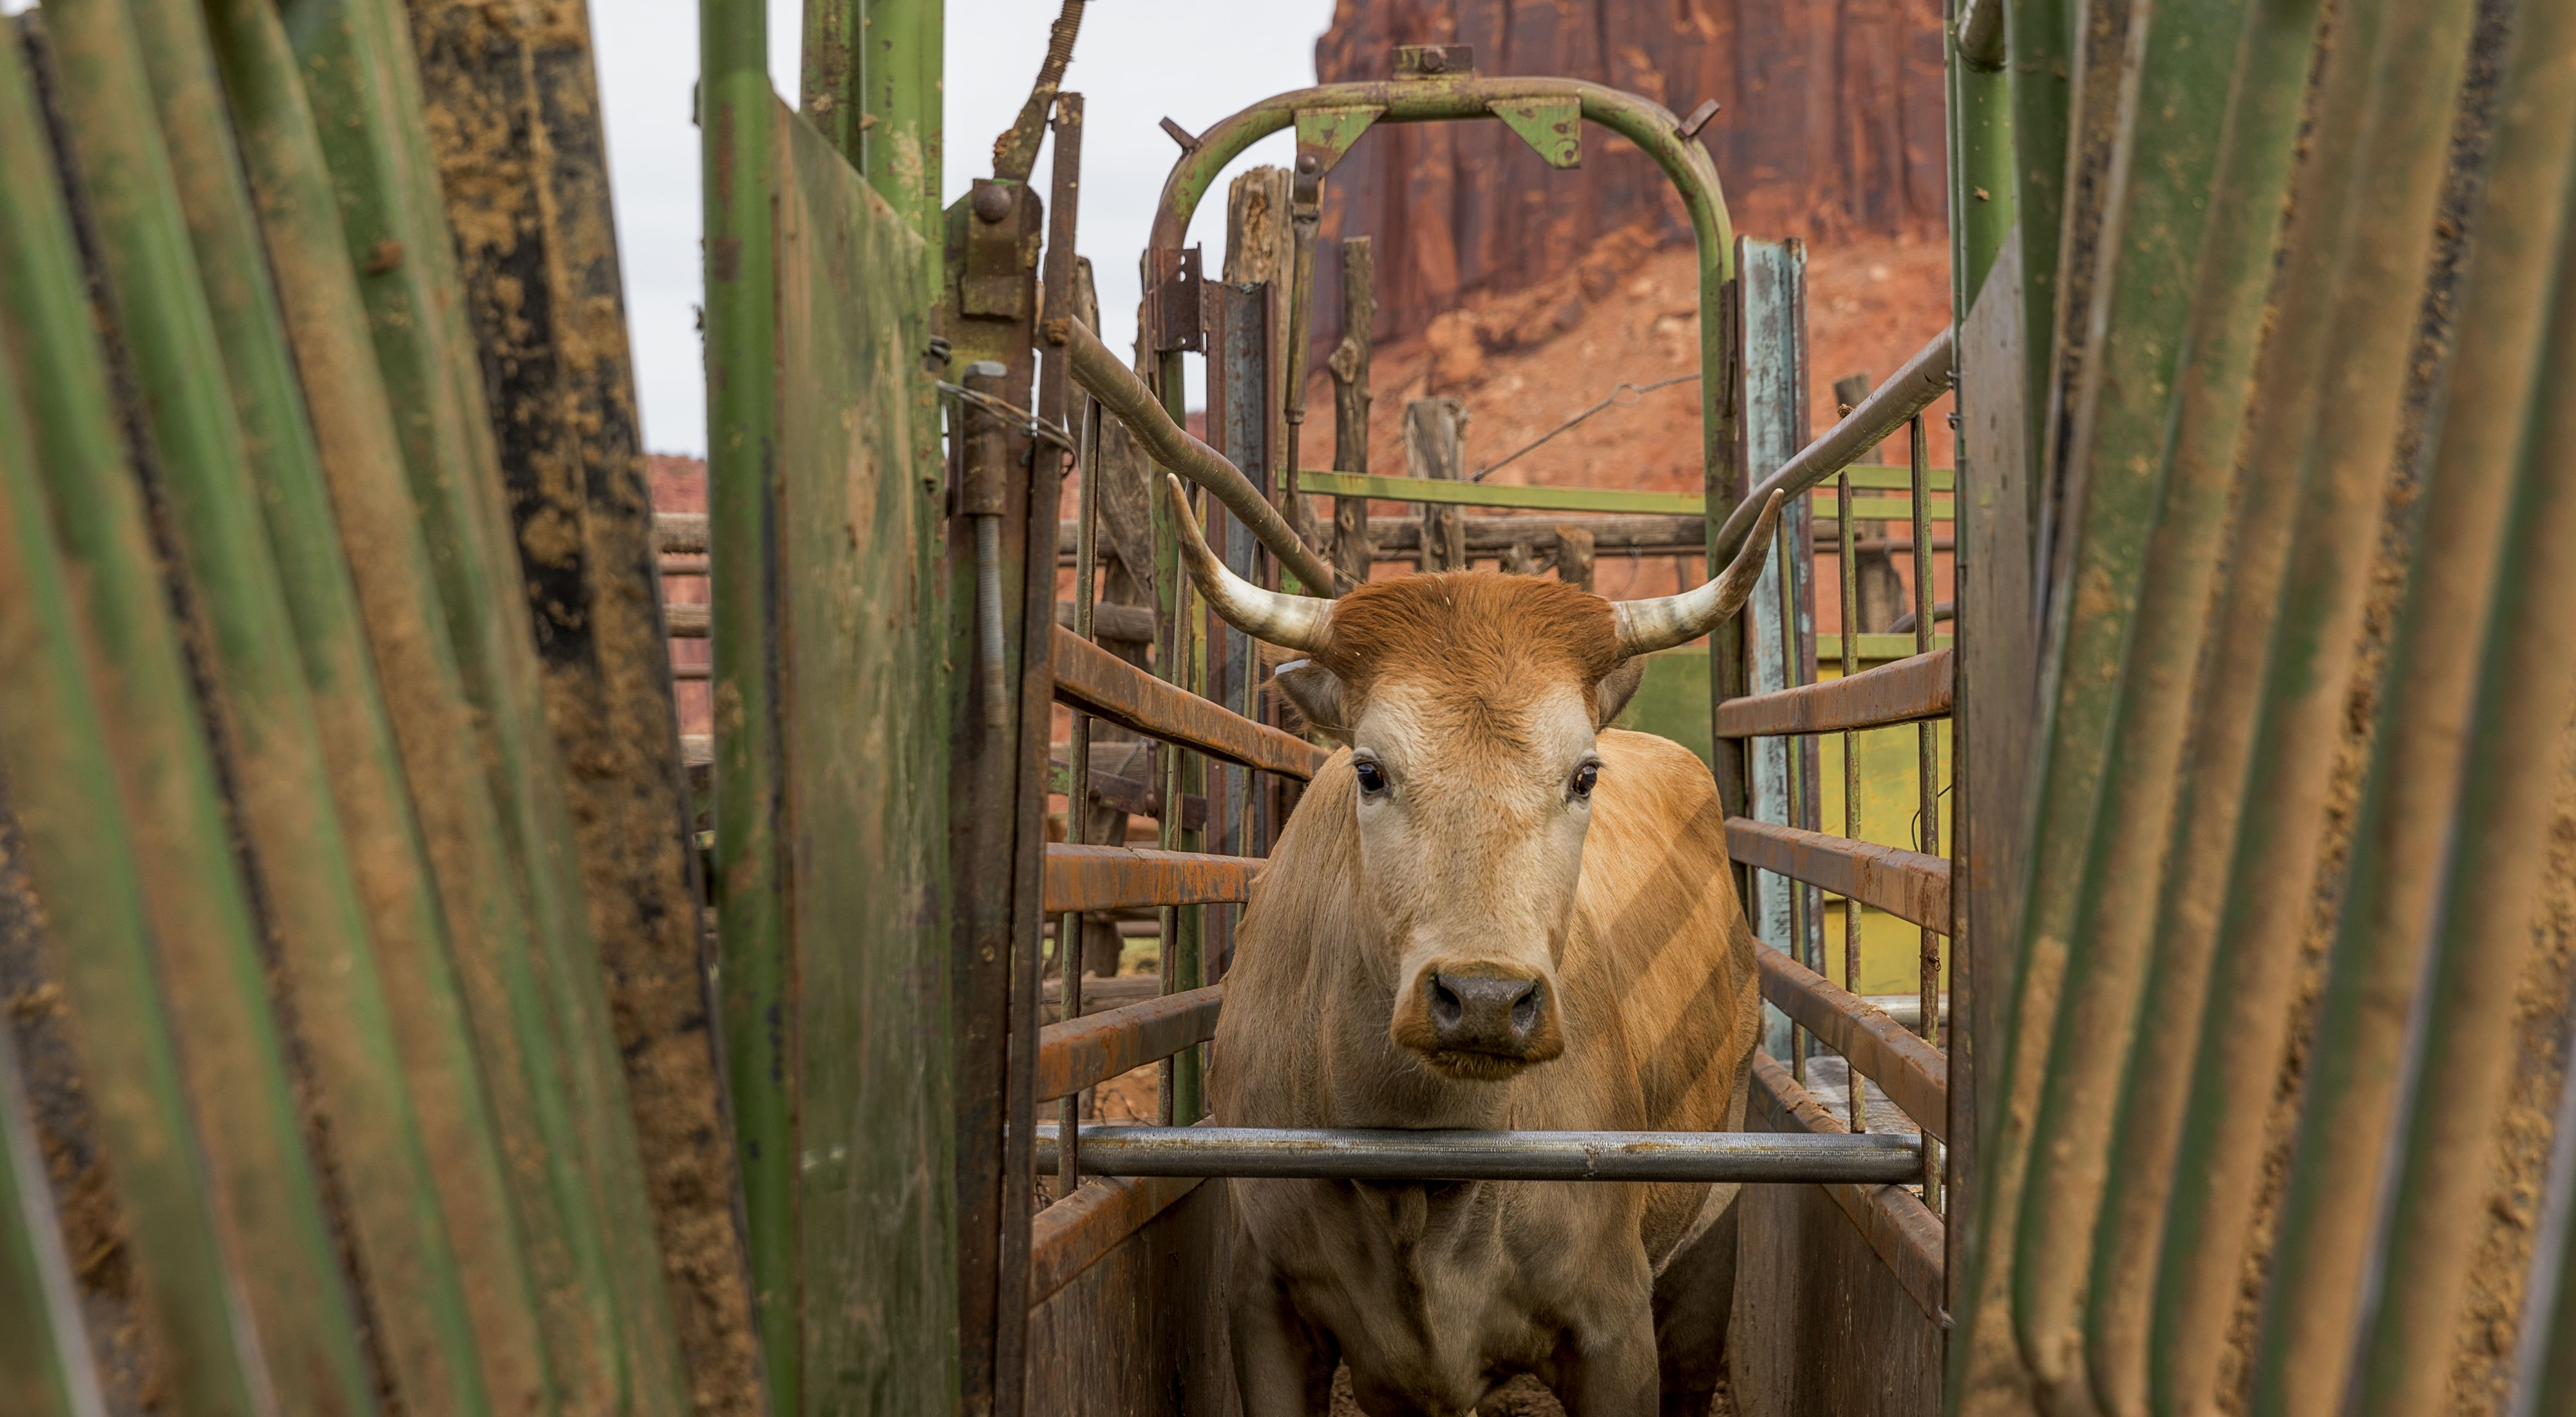 Close up of a small brown cow with short horns standing in a cattle chute. Cow looks straight at camera.